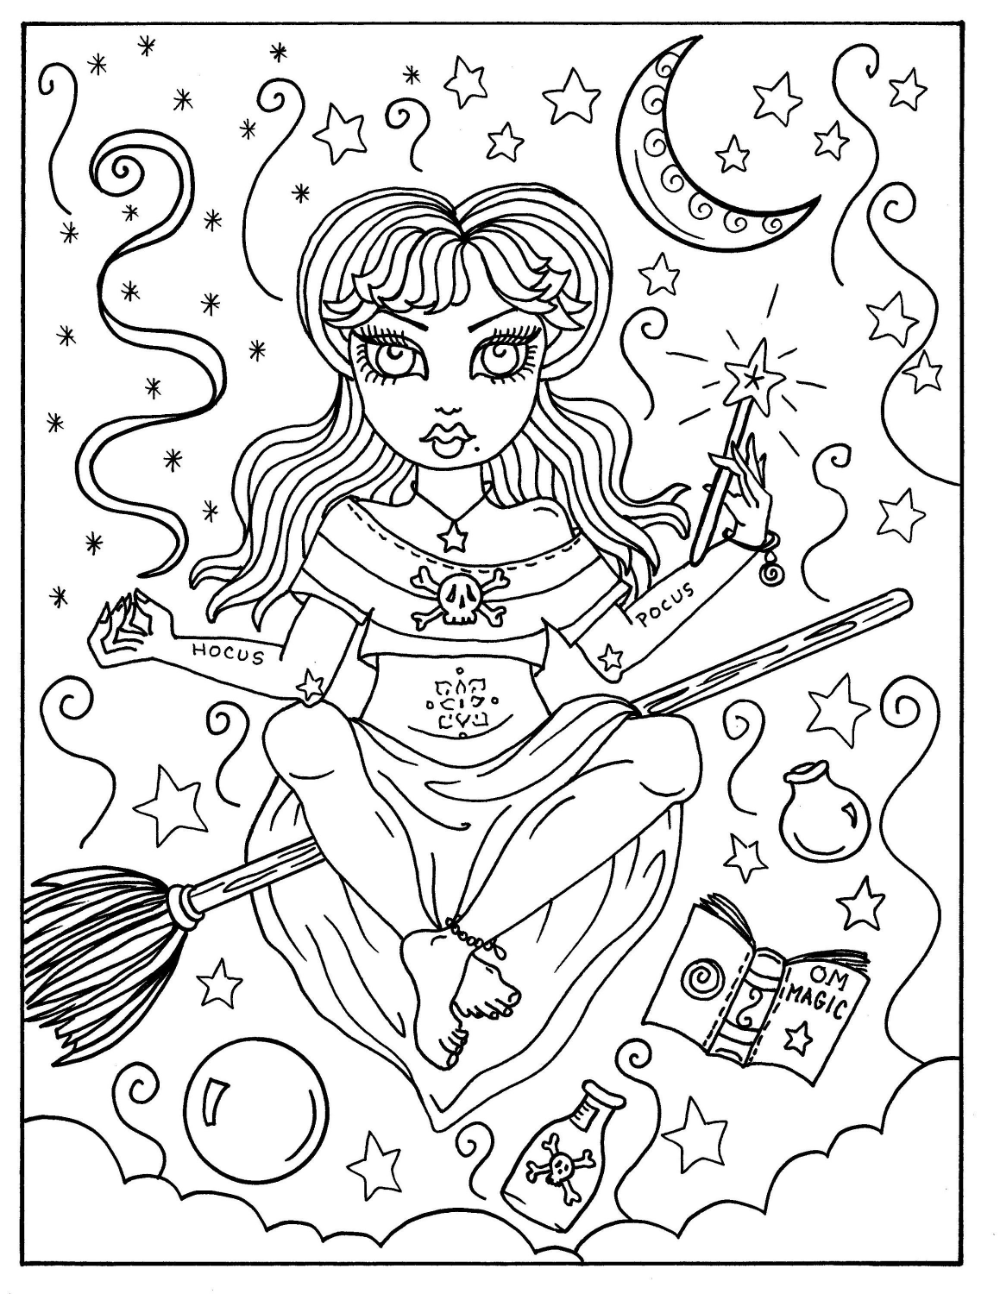 Hocus Pocus Witches Printable Coloring Pages For Adults Halloween Fun Halloween Witch Whimsical Coloring Book Halloween Coloring Book Witch Coloring Pages Halloween Coloring Disney Coloring Pages